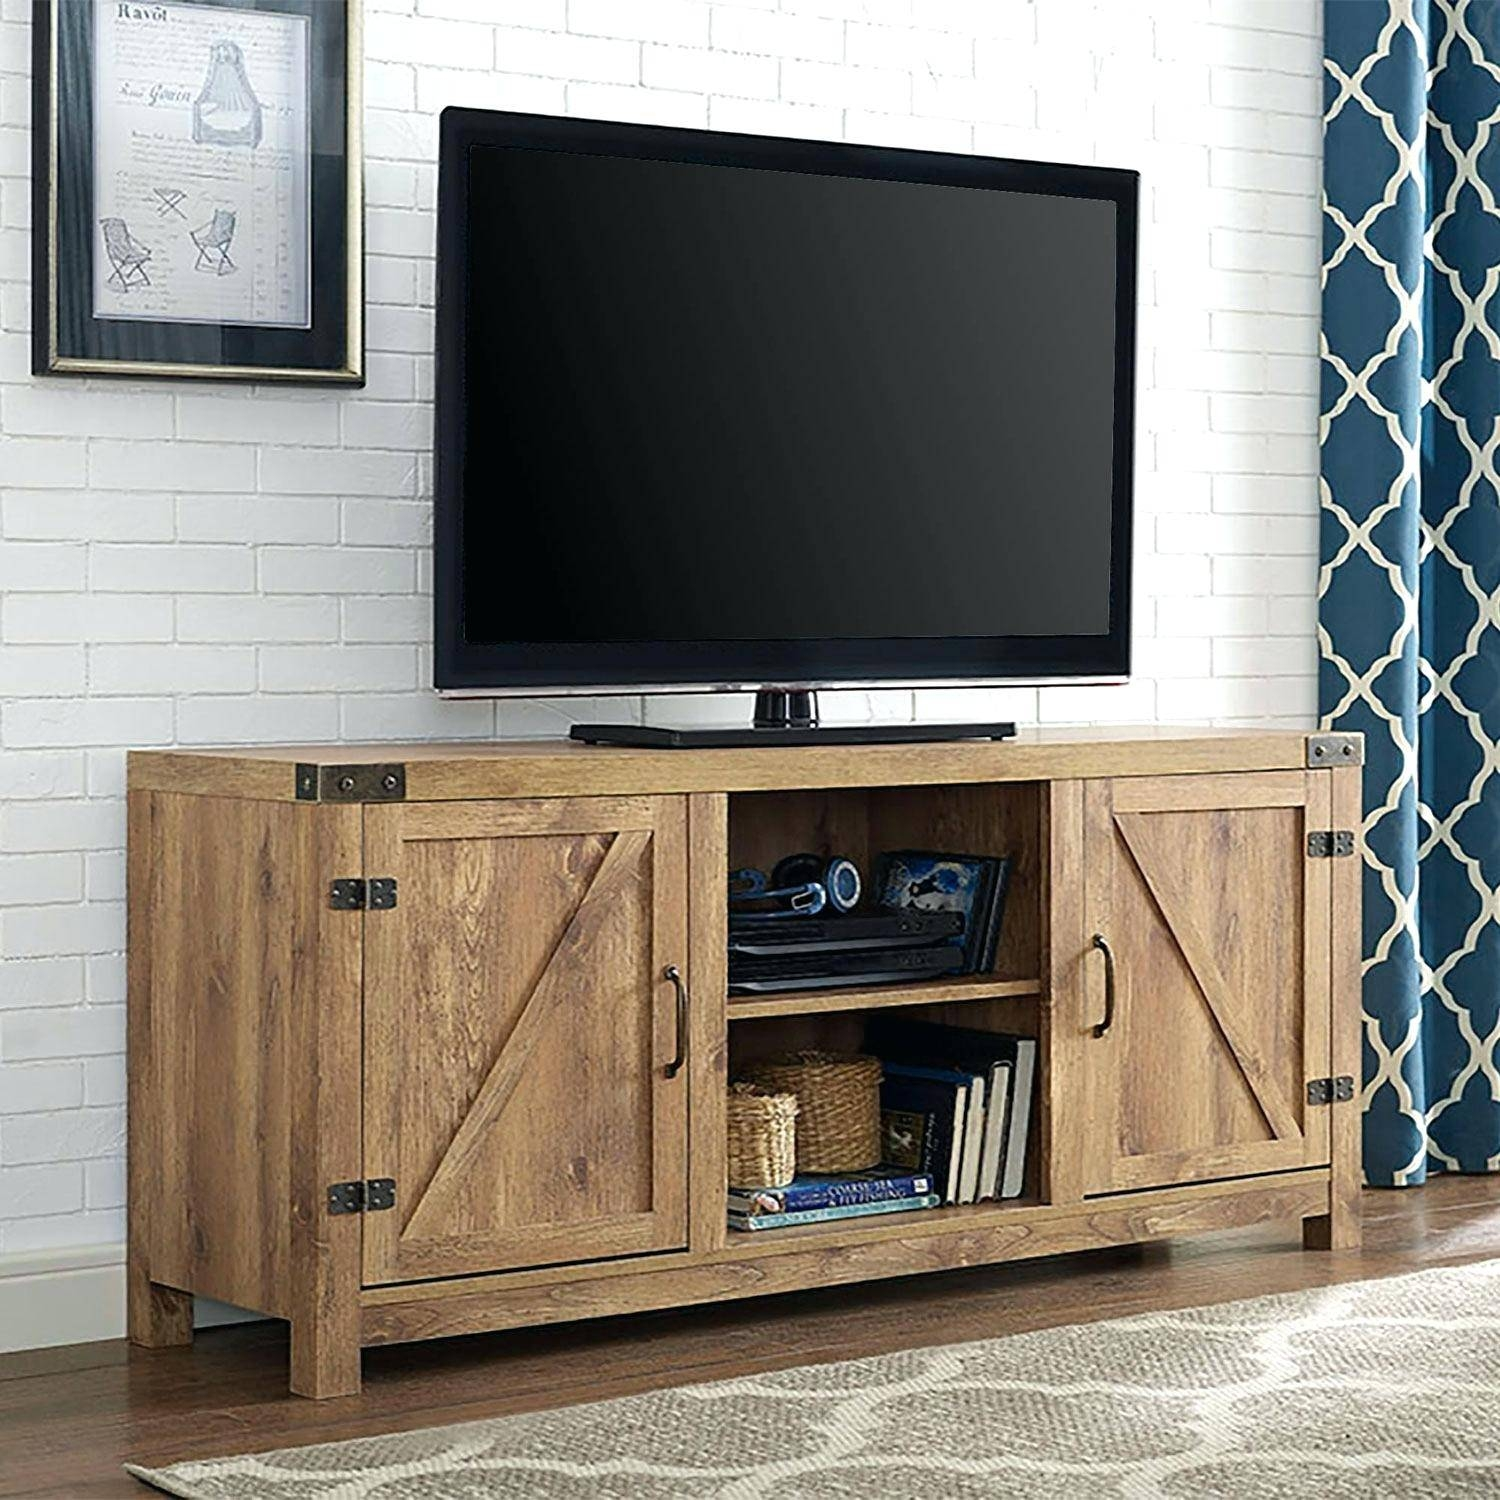 Tv Stand : 81 Surprising Open Bookcase Room Divider Home Design 48 regarding Tv Stands With Matching Bookcases (Image 10 of 15)